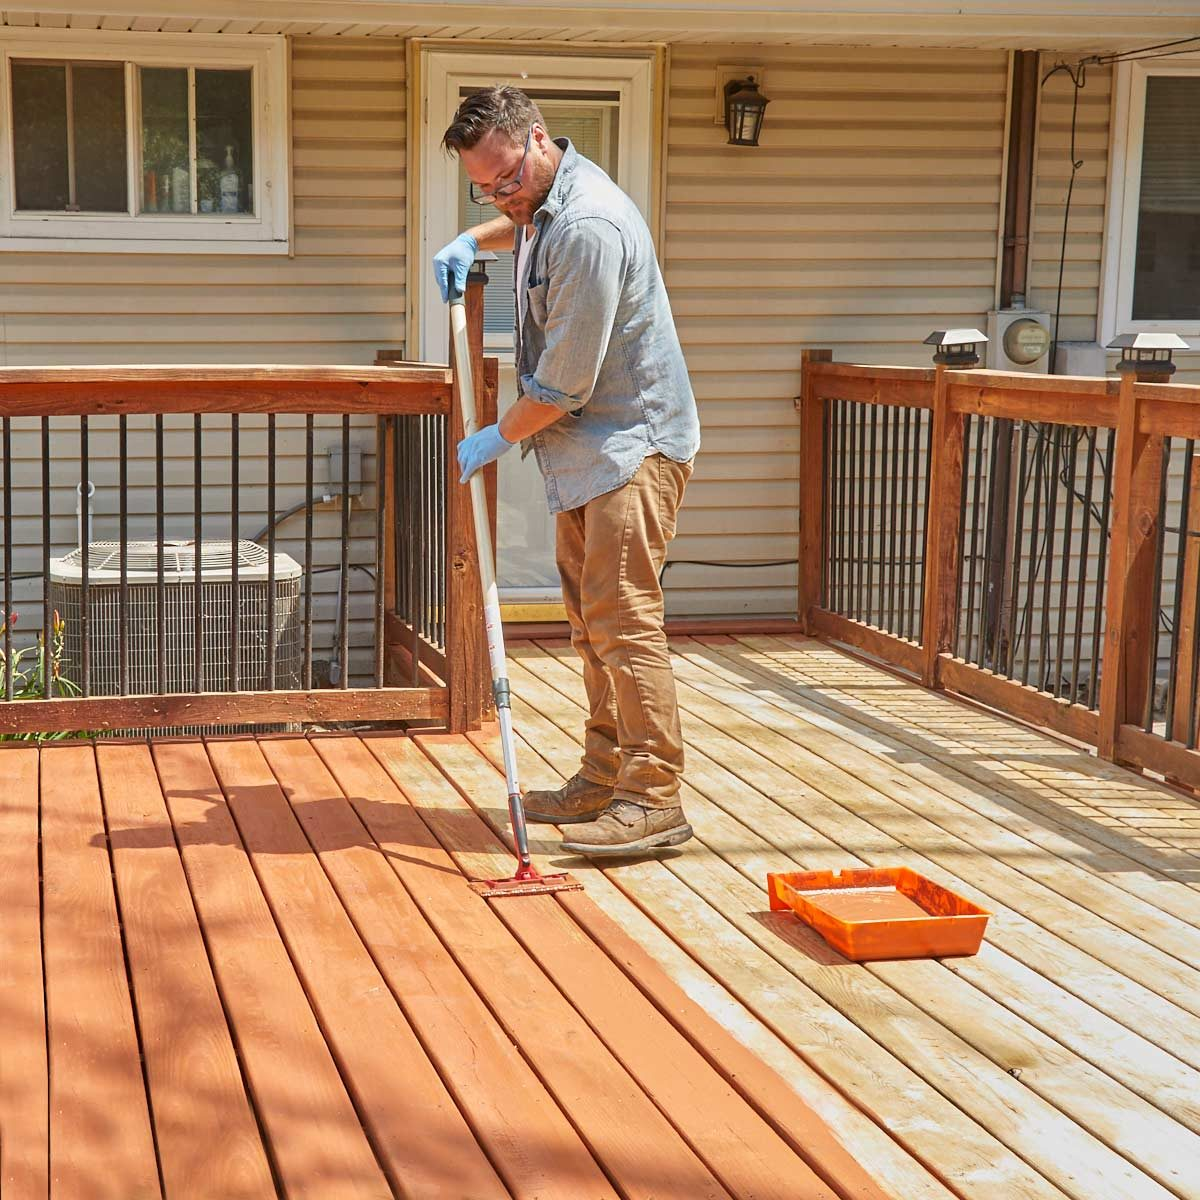 How To Refinish A Deck With Acrylic Based Stain The Family